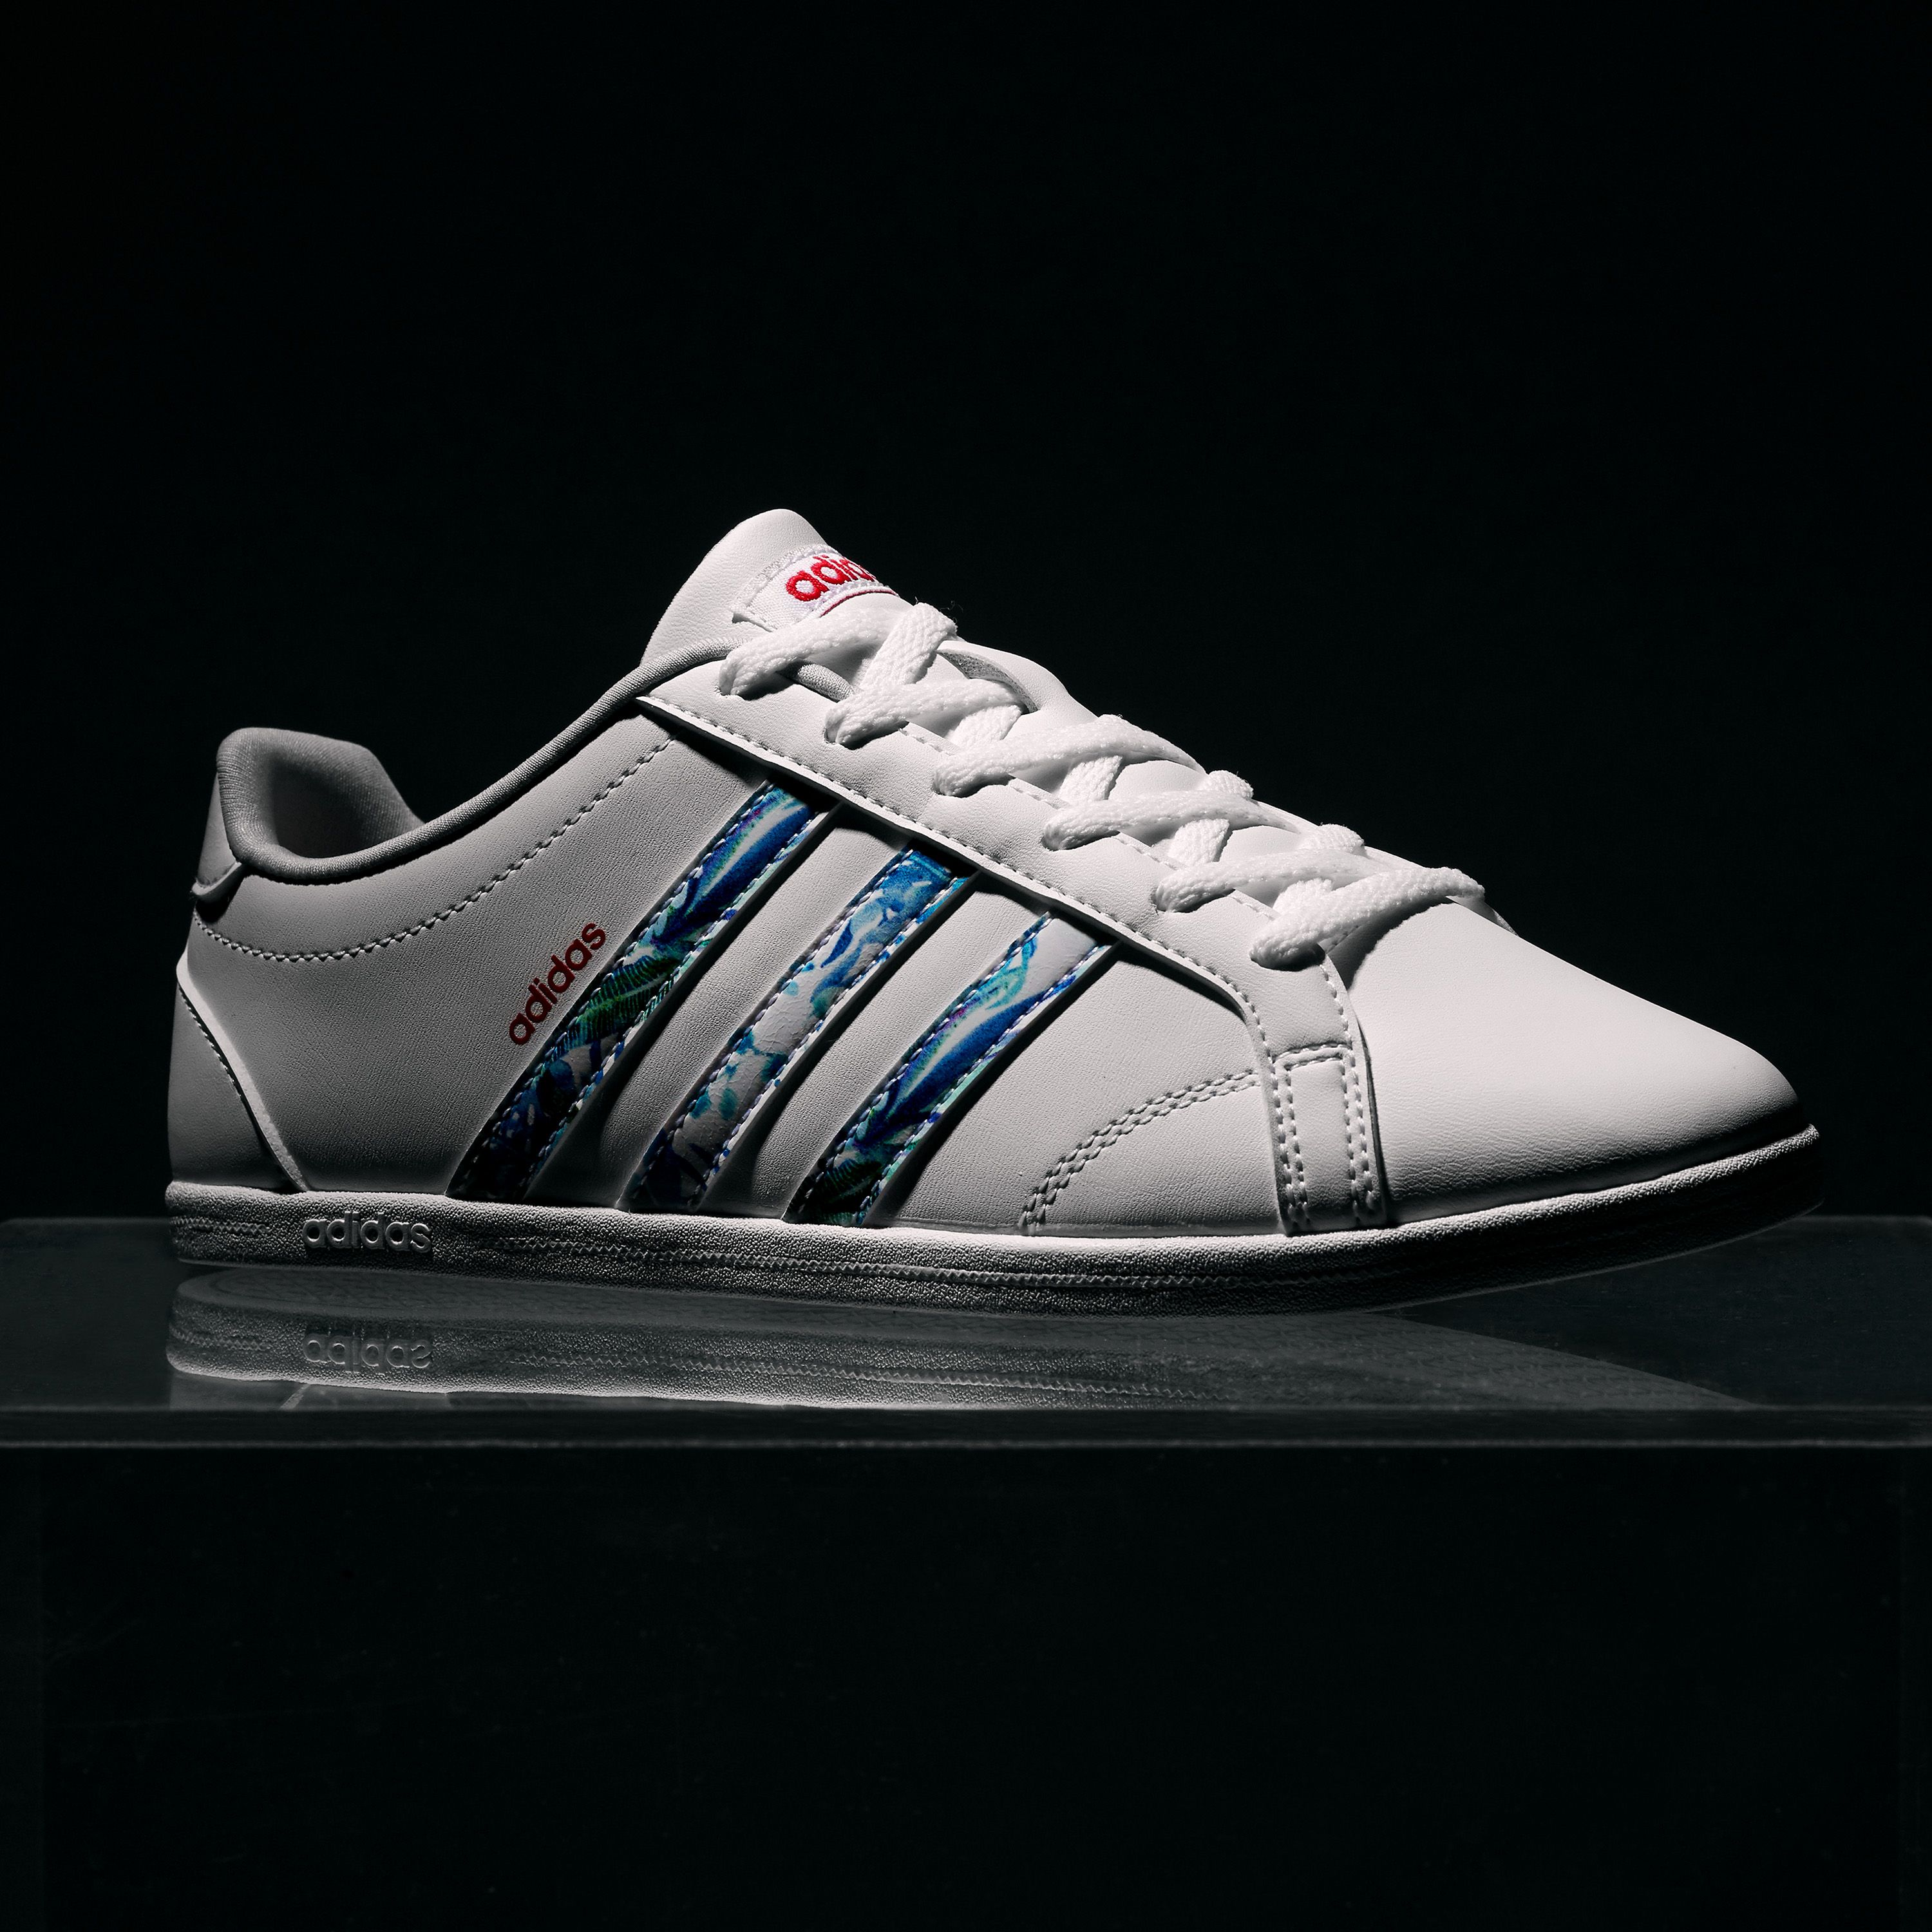 The adidas Coneo trainers with a floral